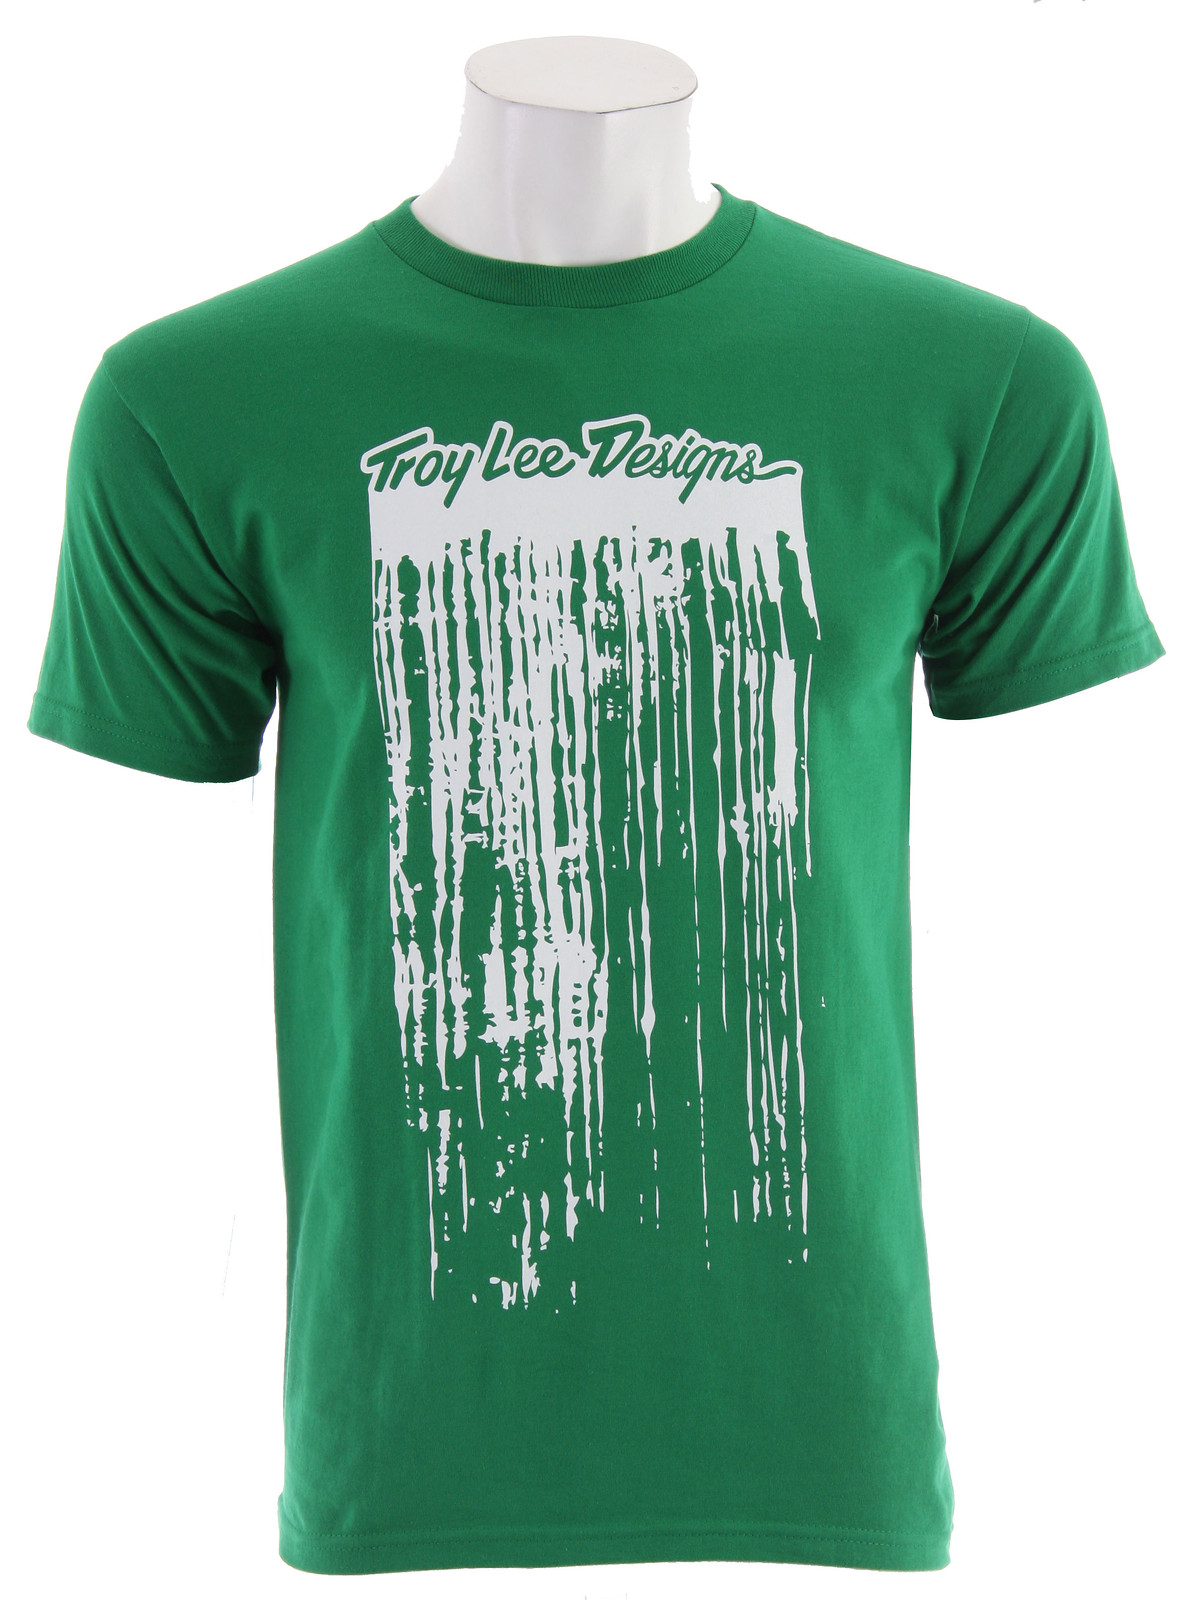 Continental Bike Tires >> Troy Lee Designs Paint Drips T-Shirt Kelly Green - Reviews ...